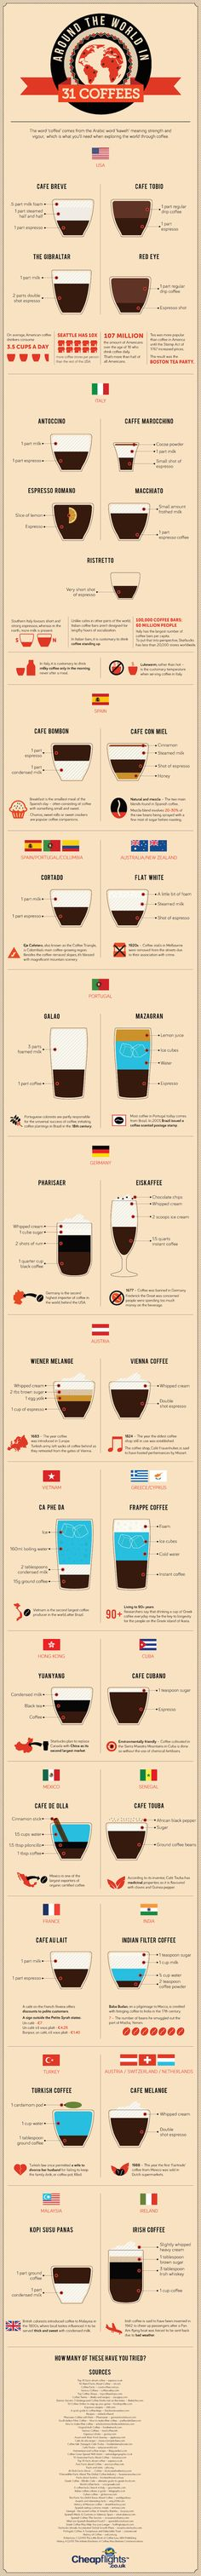 Around the world in 31 coffees: the perfect guide to your morning cup of joe. (INFOGRAPHIC)